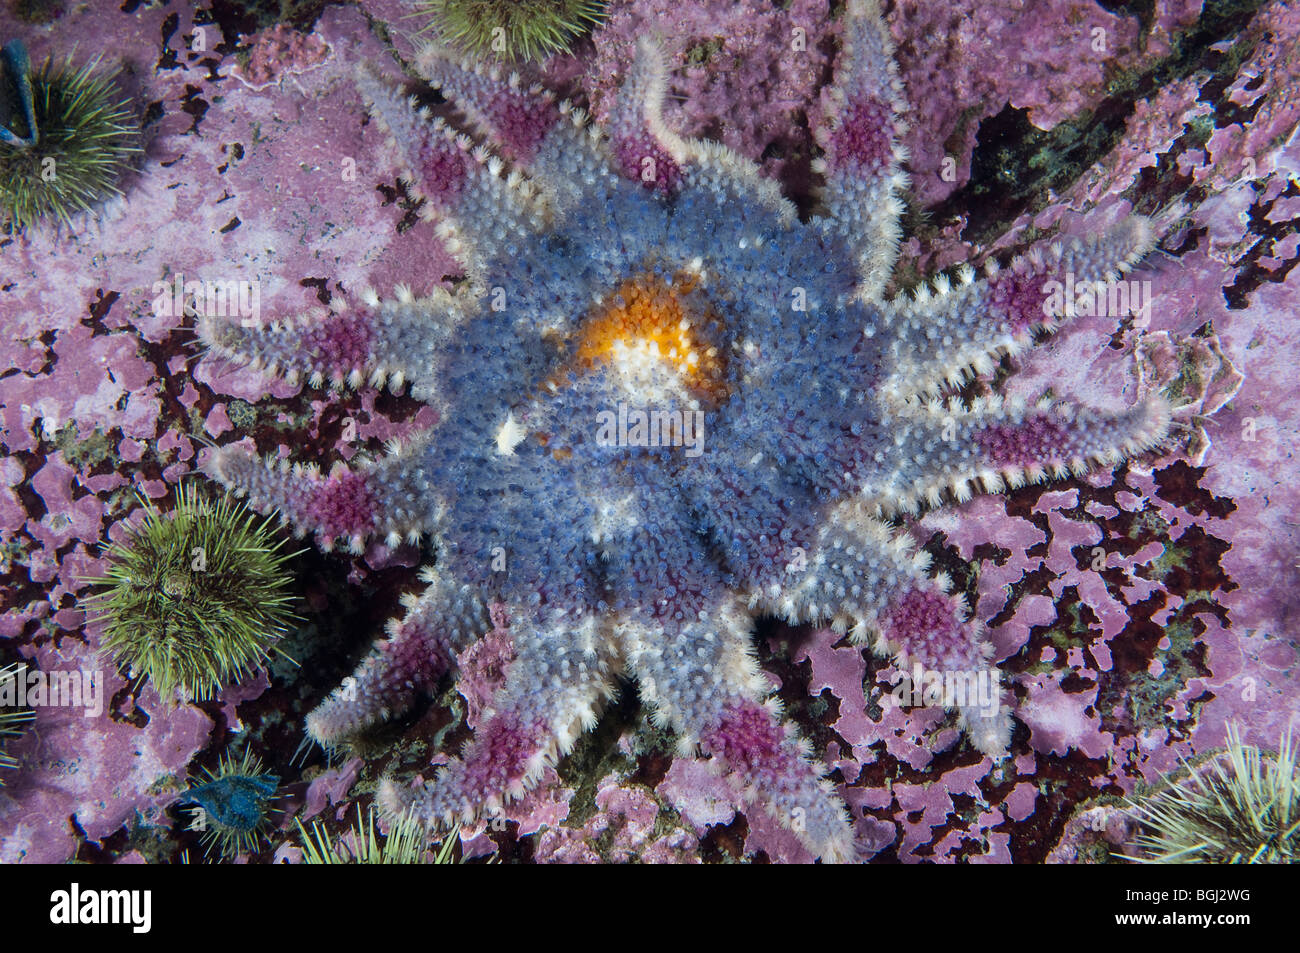 Spiny Sunstar underwater in the St. Lawrence Estuary in Canada - Stock Image